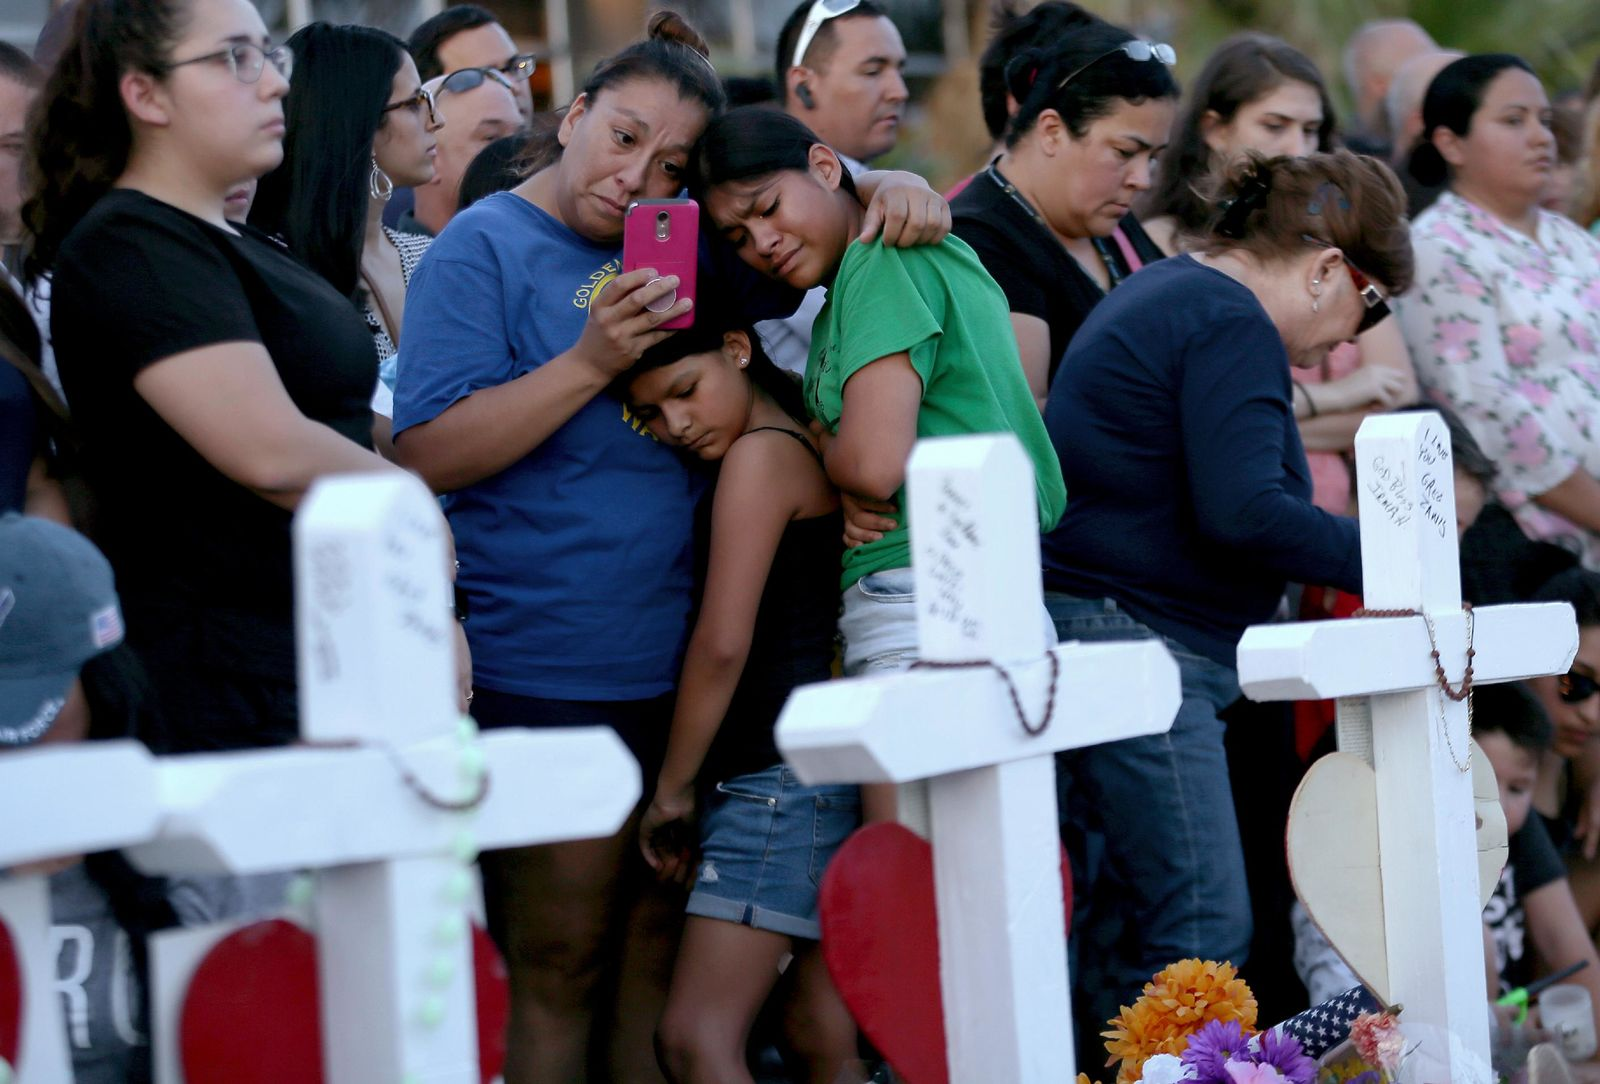 A mother clings to her daughters as they visit a memorial for the victims of Saturday's mass shooting, outside the Walmart Monday, Aug. 5, 2019, in El Paso, Texas. (Mark Lambie/The El Paso Times via AP)